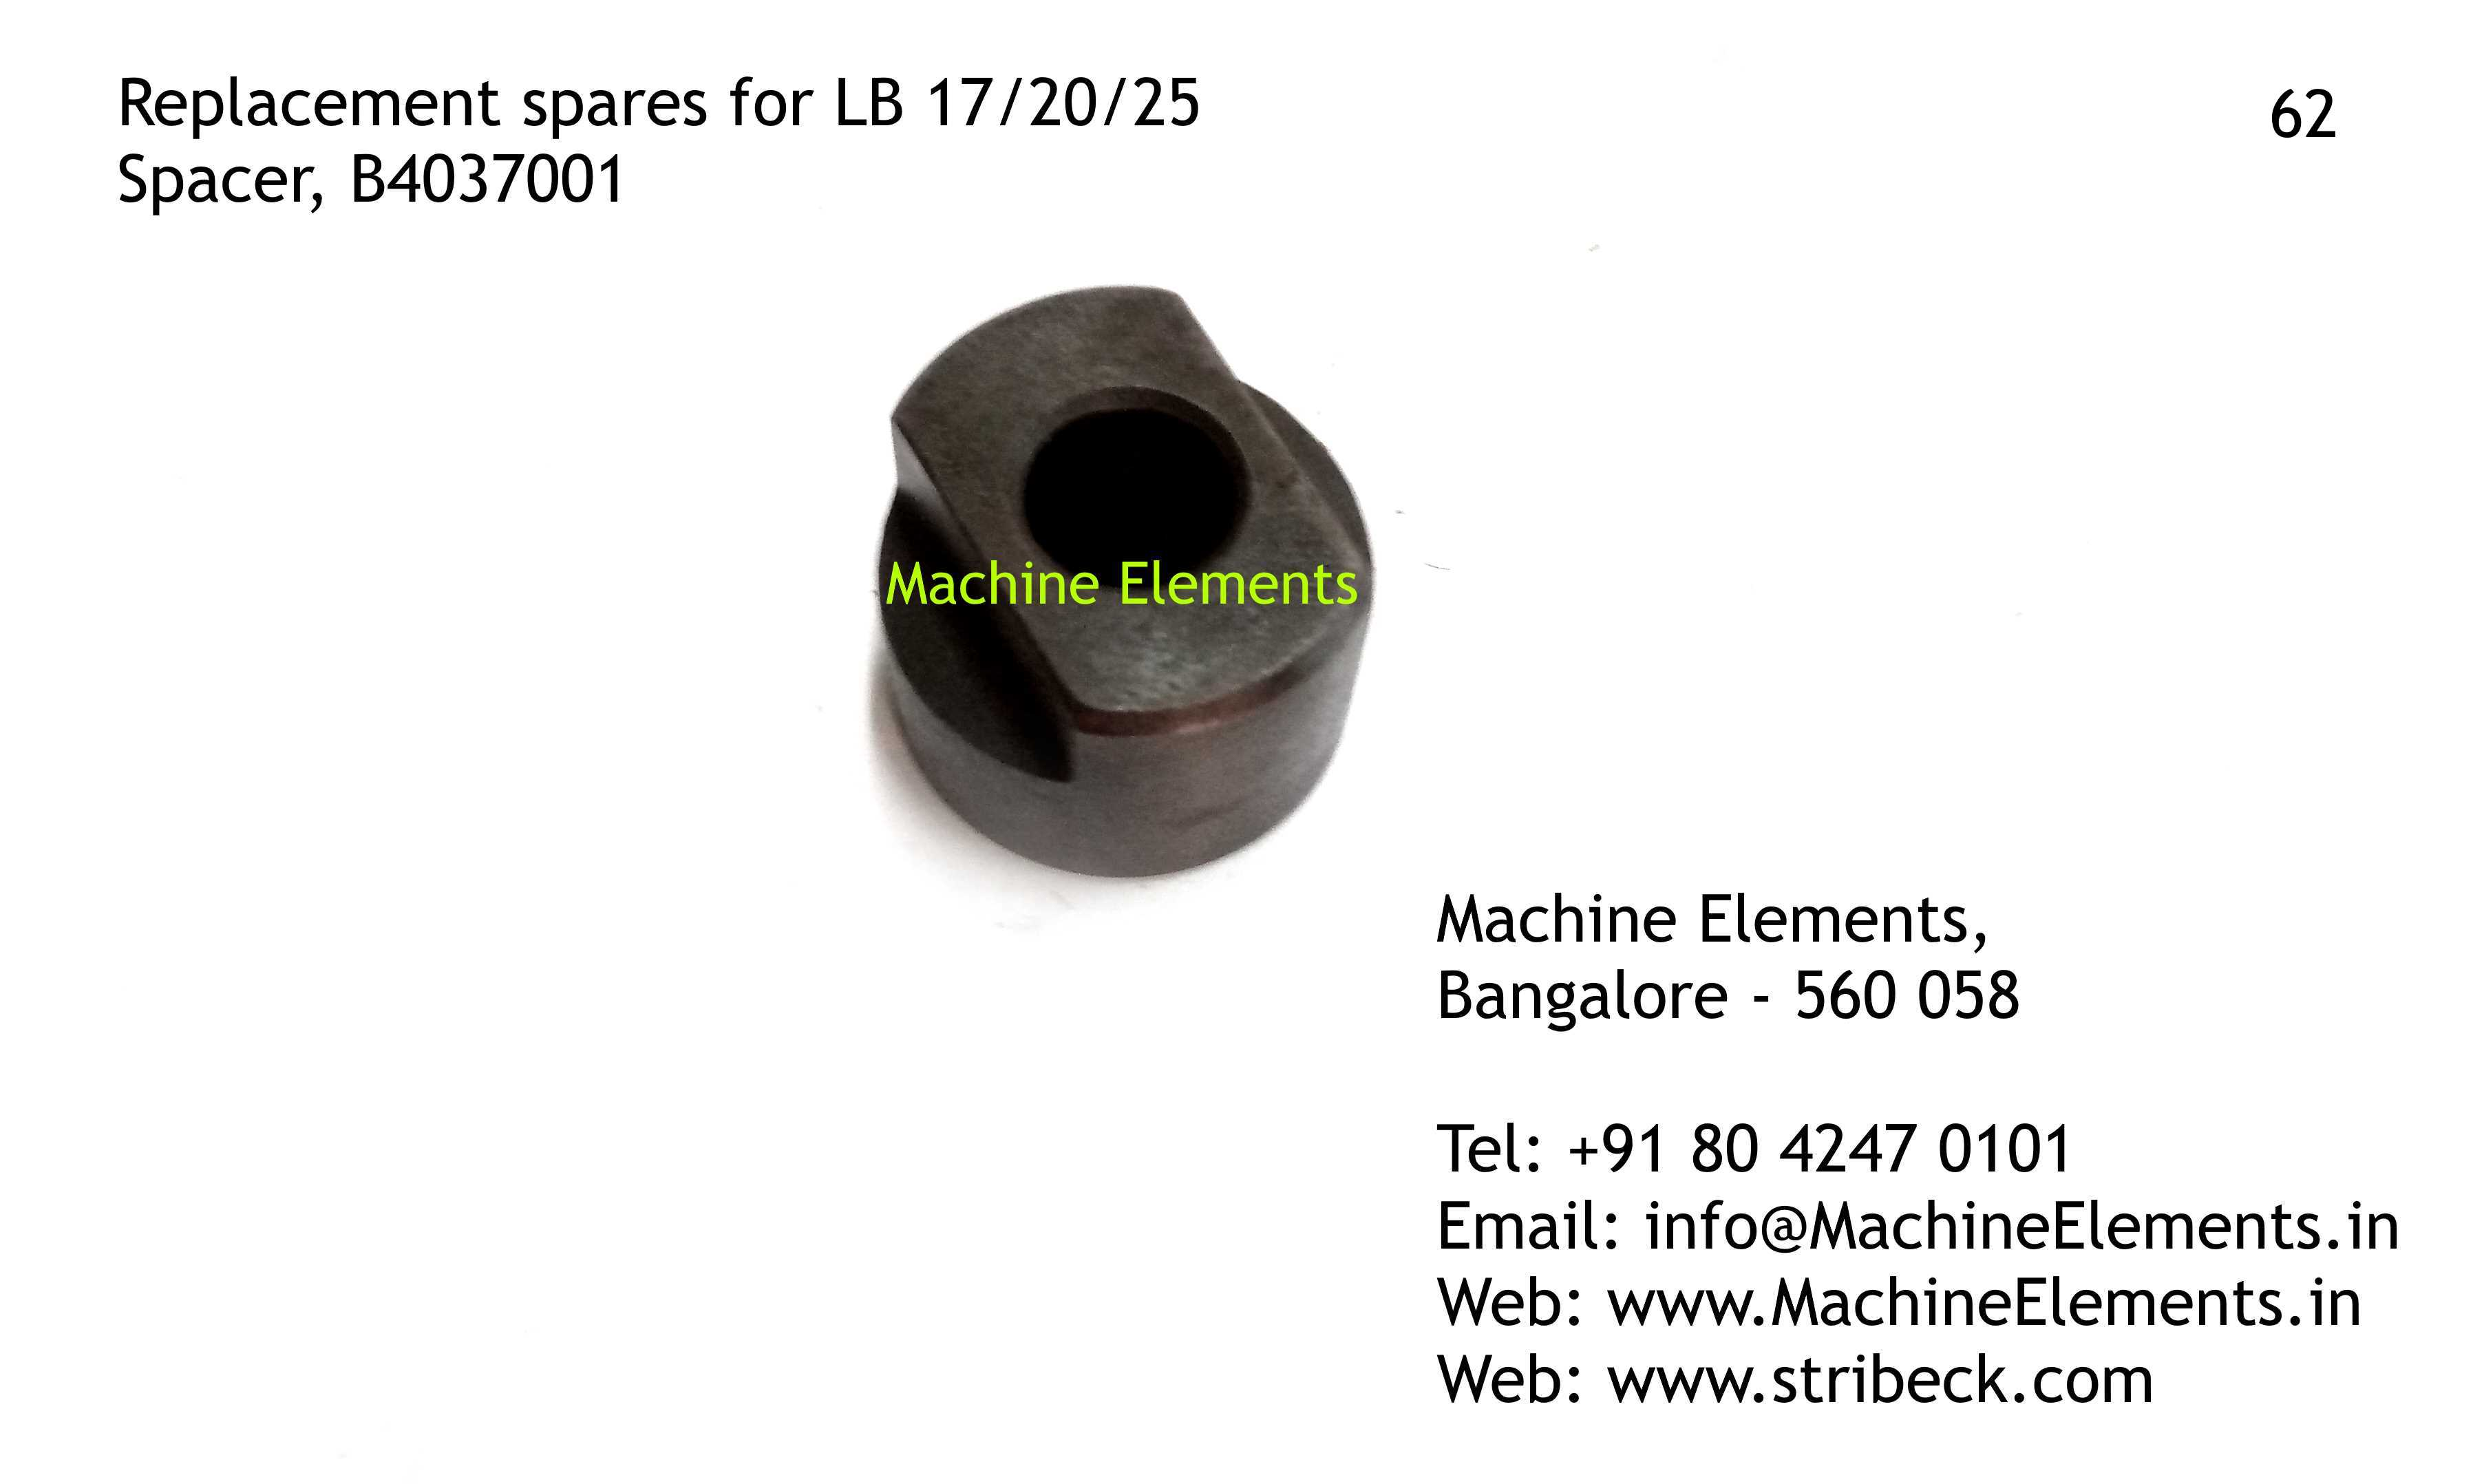 Spacer, B4037001